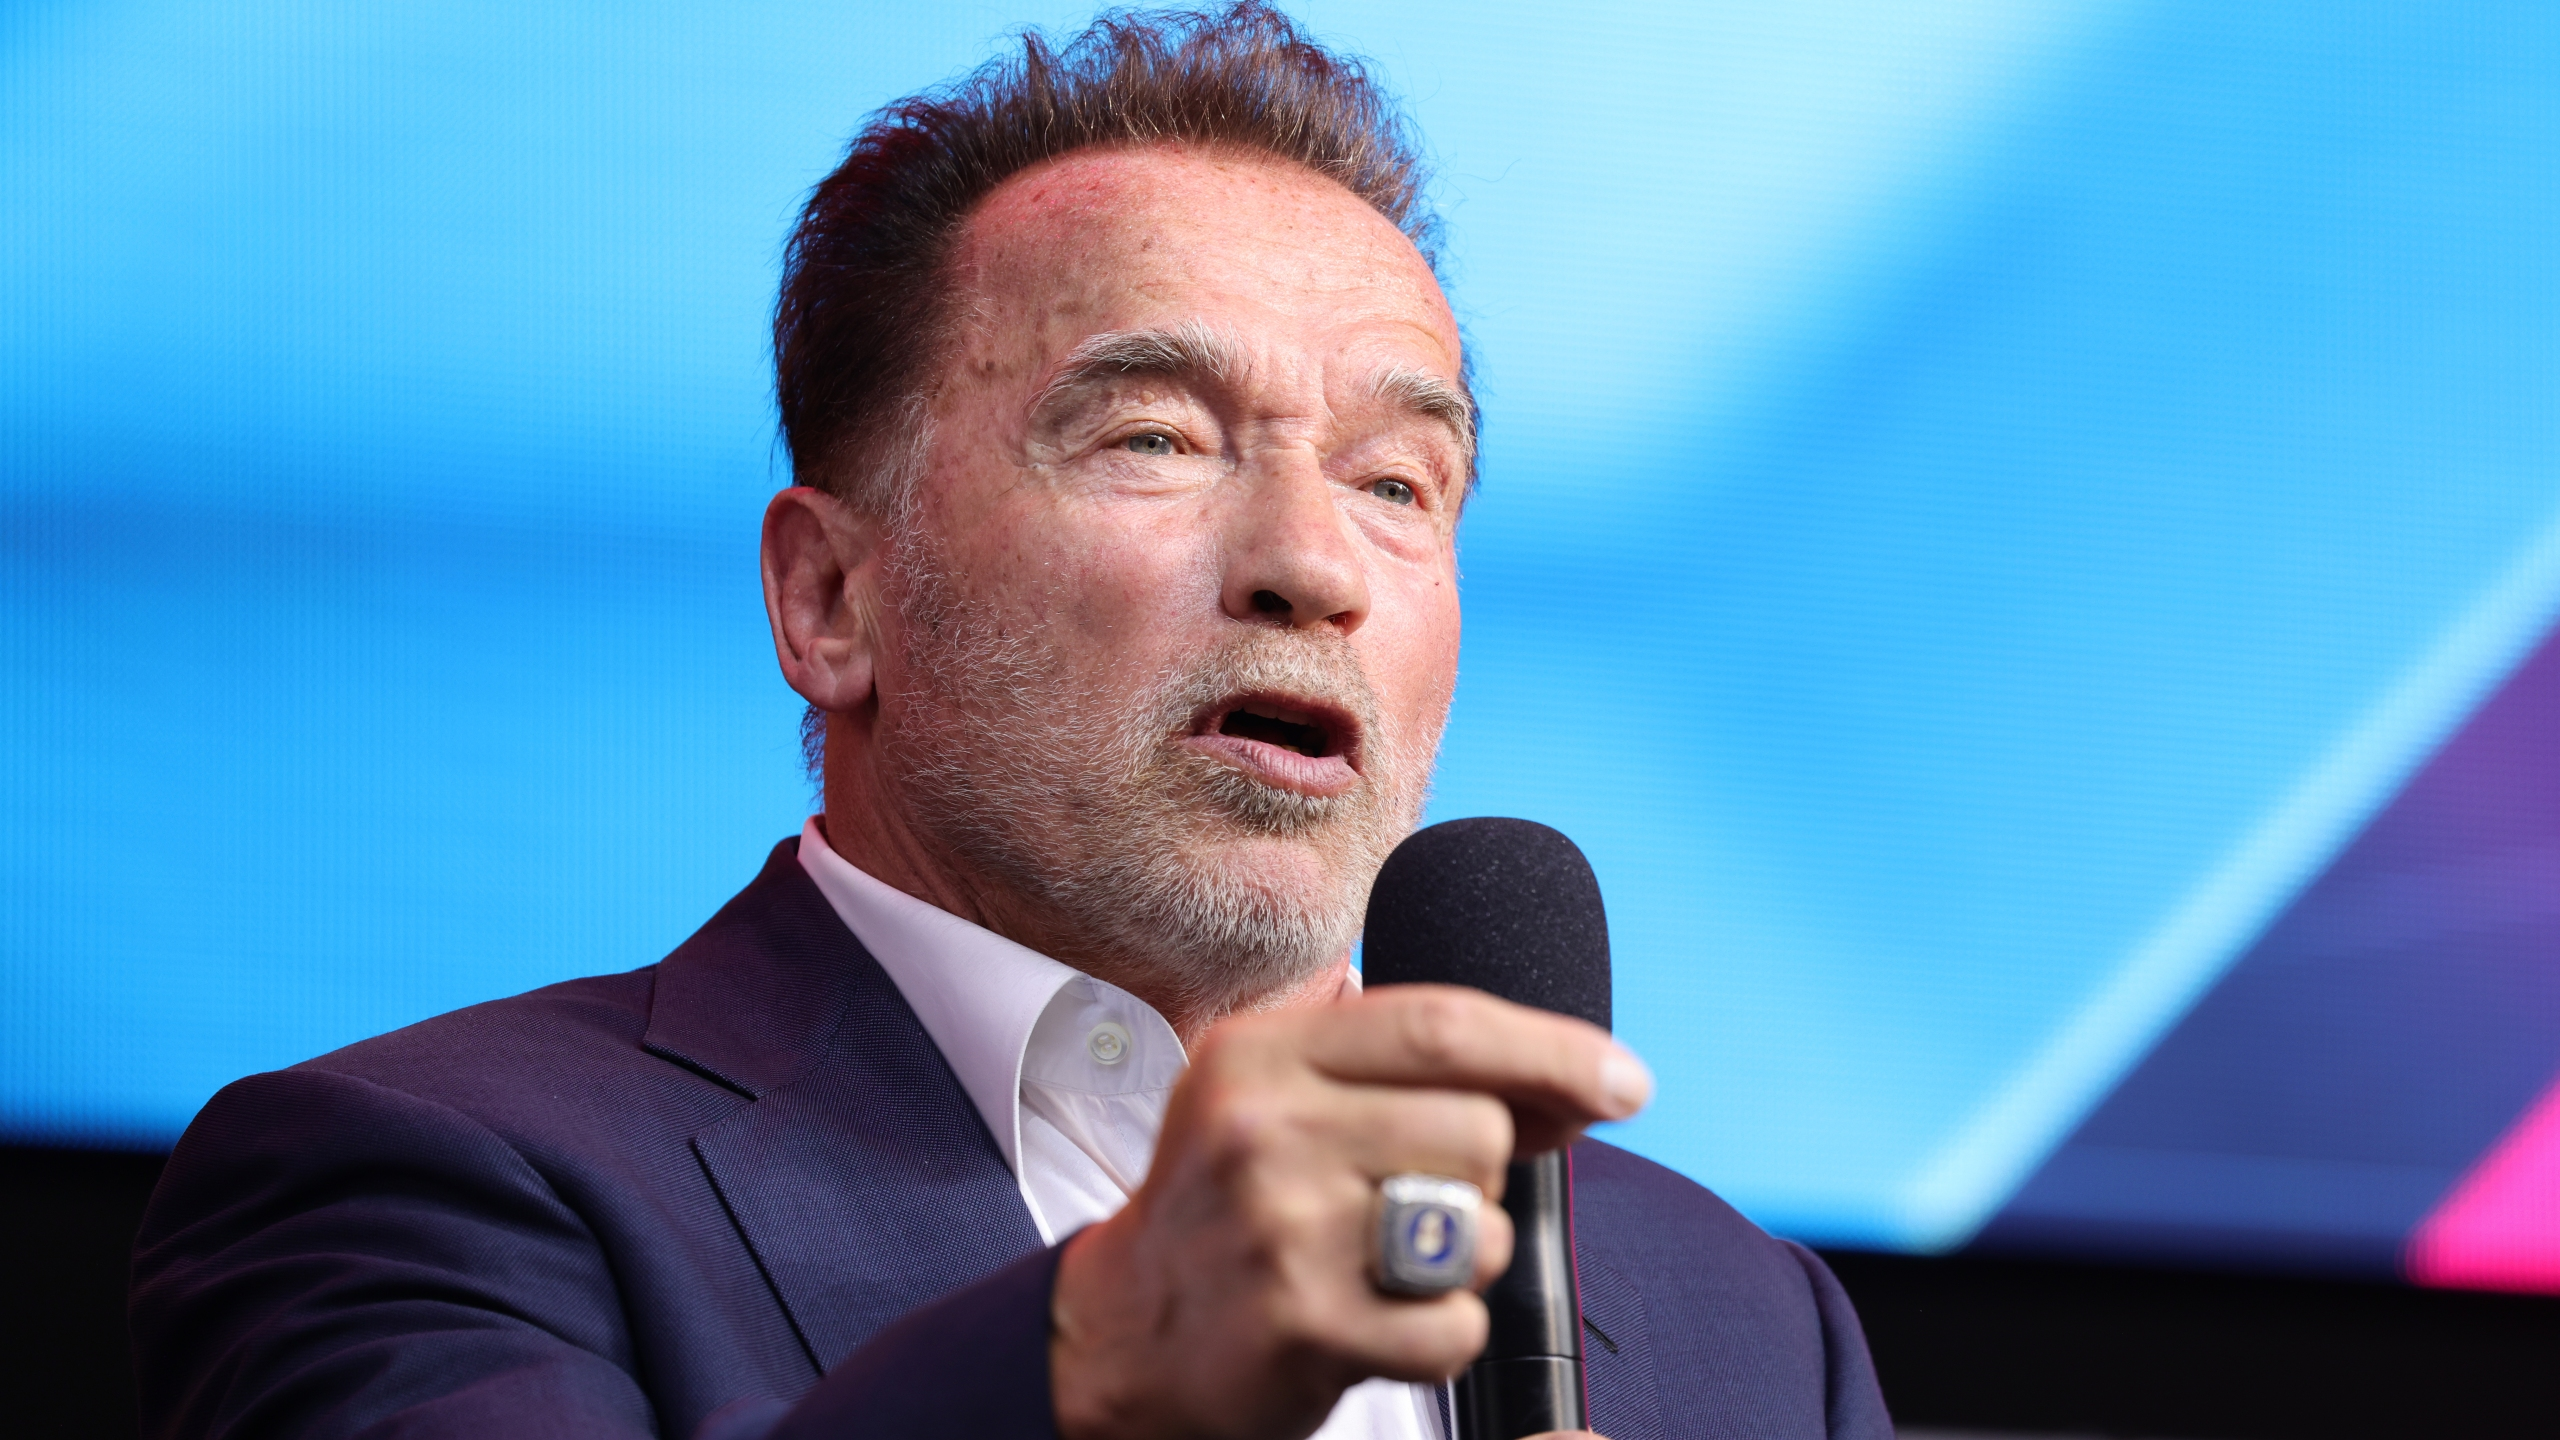 Arnold Schwarzenegger speaks in his keynote about digital sustainability during the Digital X event on September 07, 2021 in Cologne, Germany. (Andreas Rentz/Getty Images)